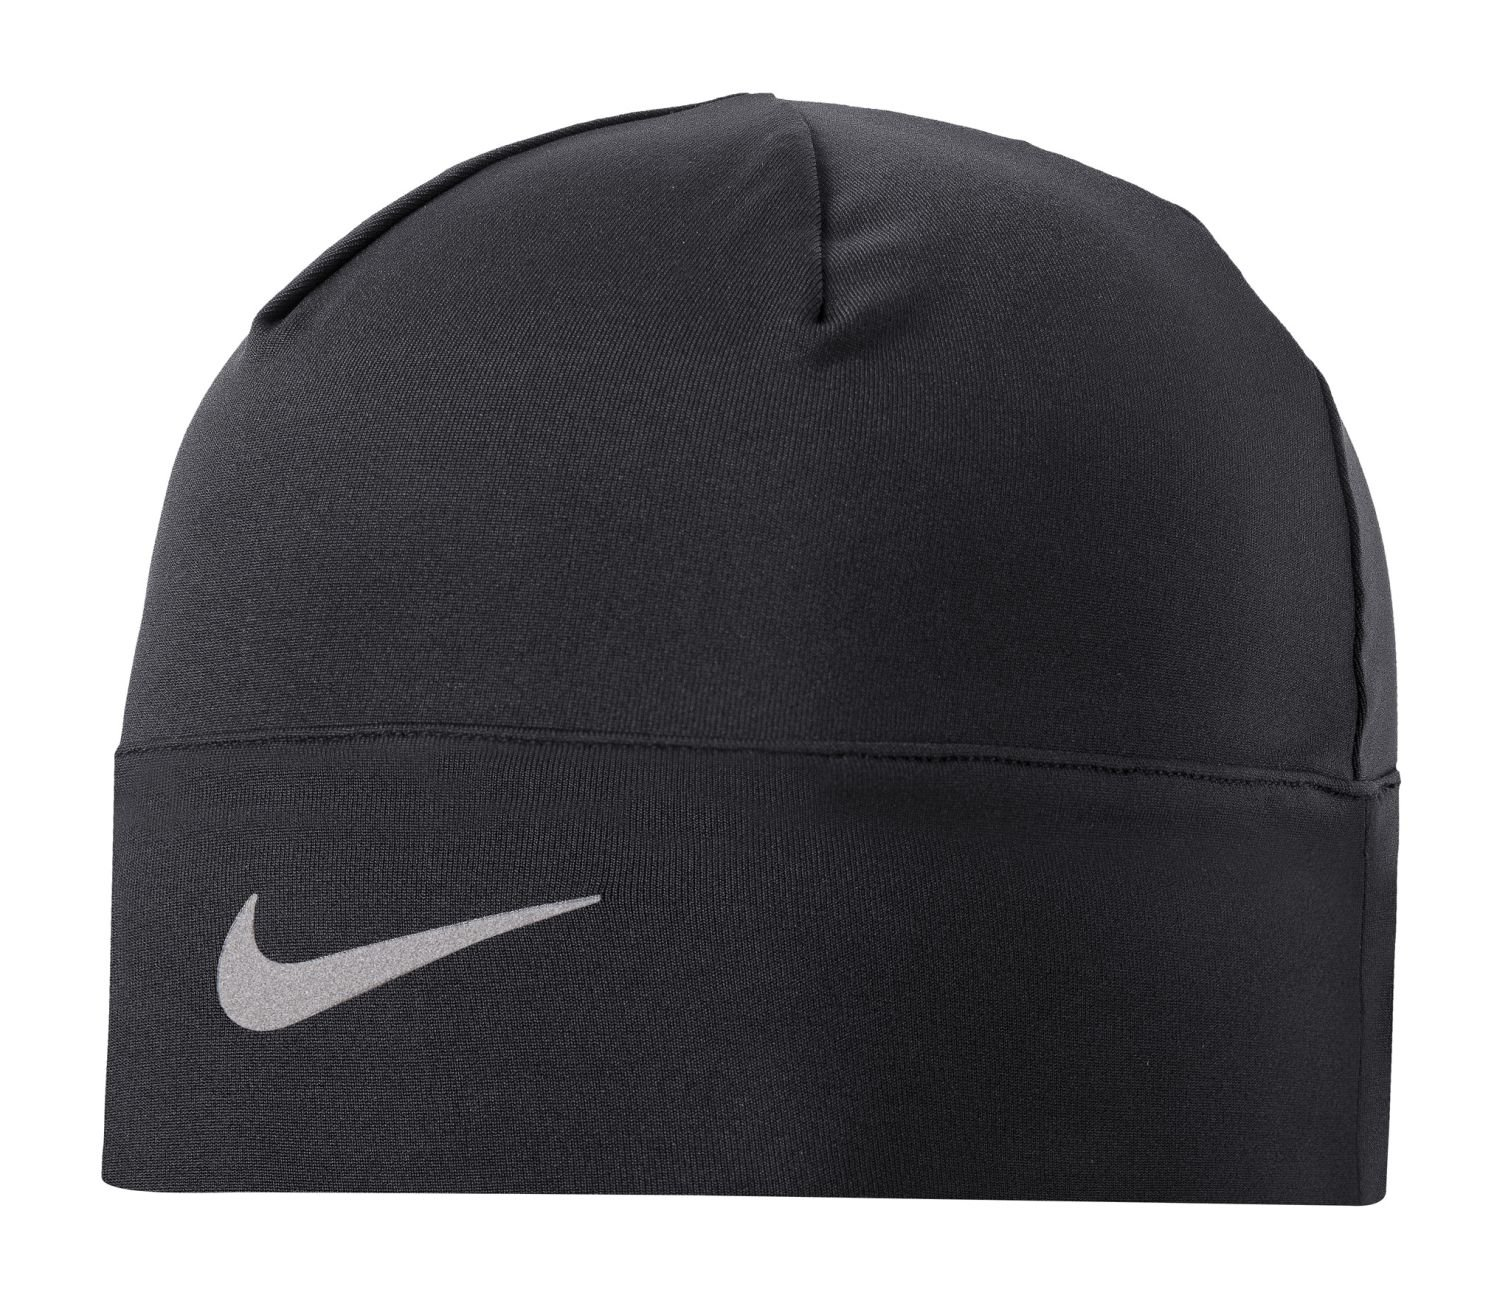 57bf4a8d987 Nike Men s Mens Run Dry Hat and Glove Running Set